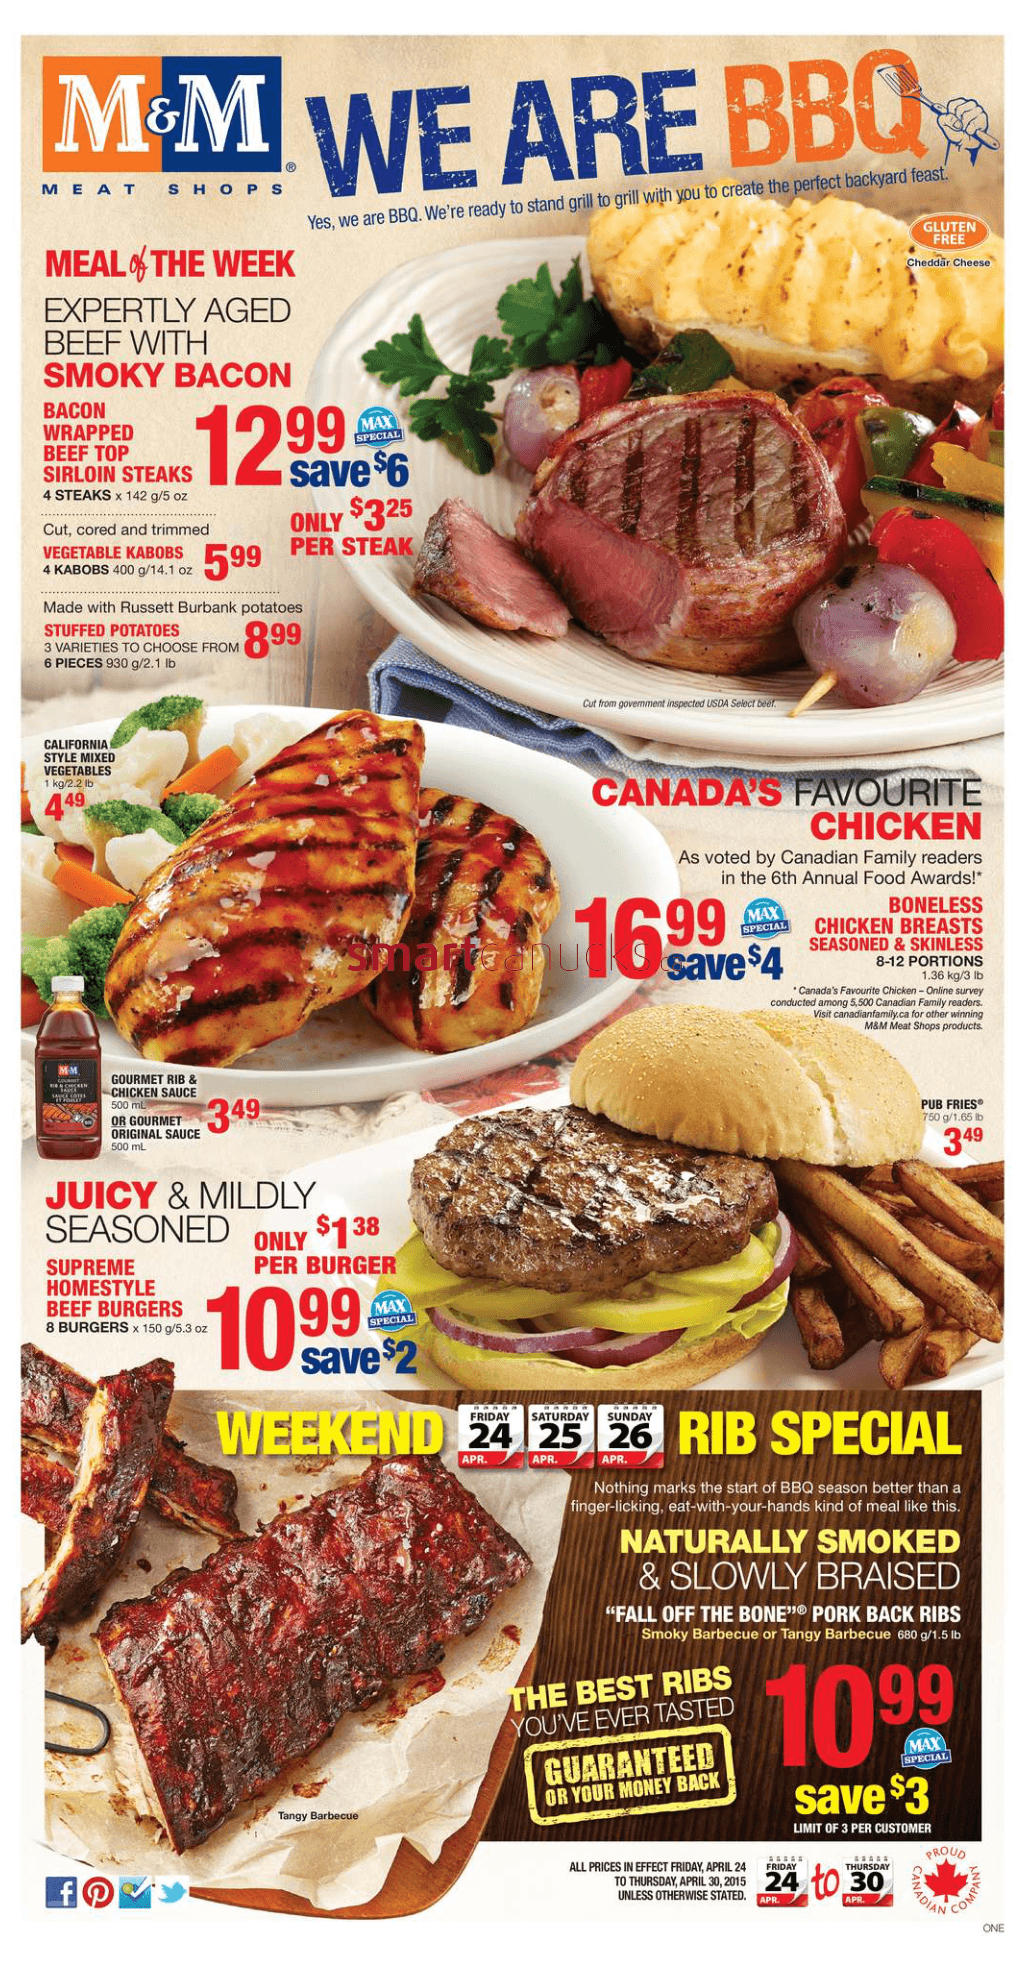 m m meat shops View all the grocery products on sale in the m&m meat shops weekly grocery flyer in your area and save money on your grocery shopping list.